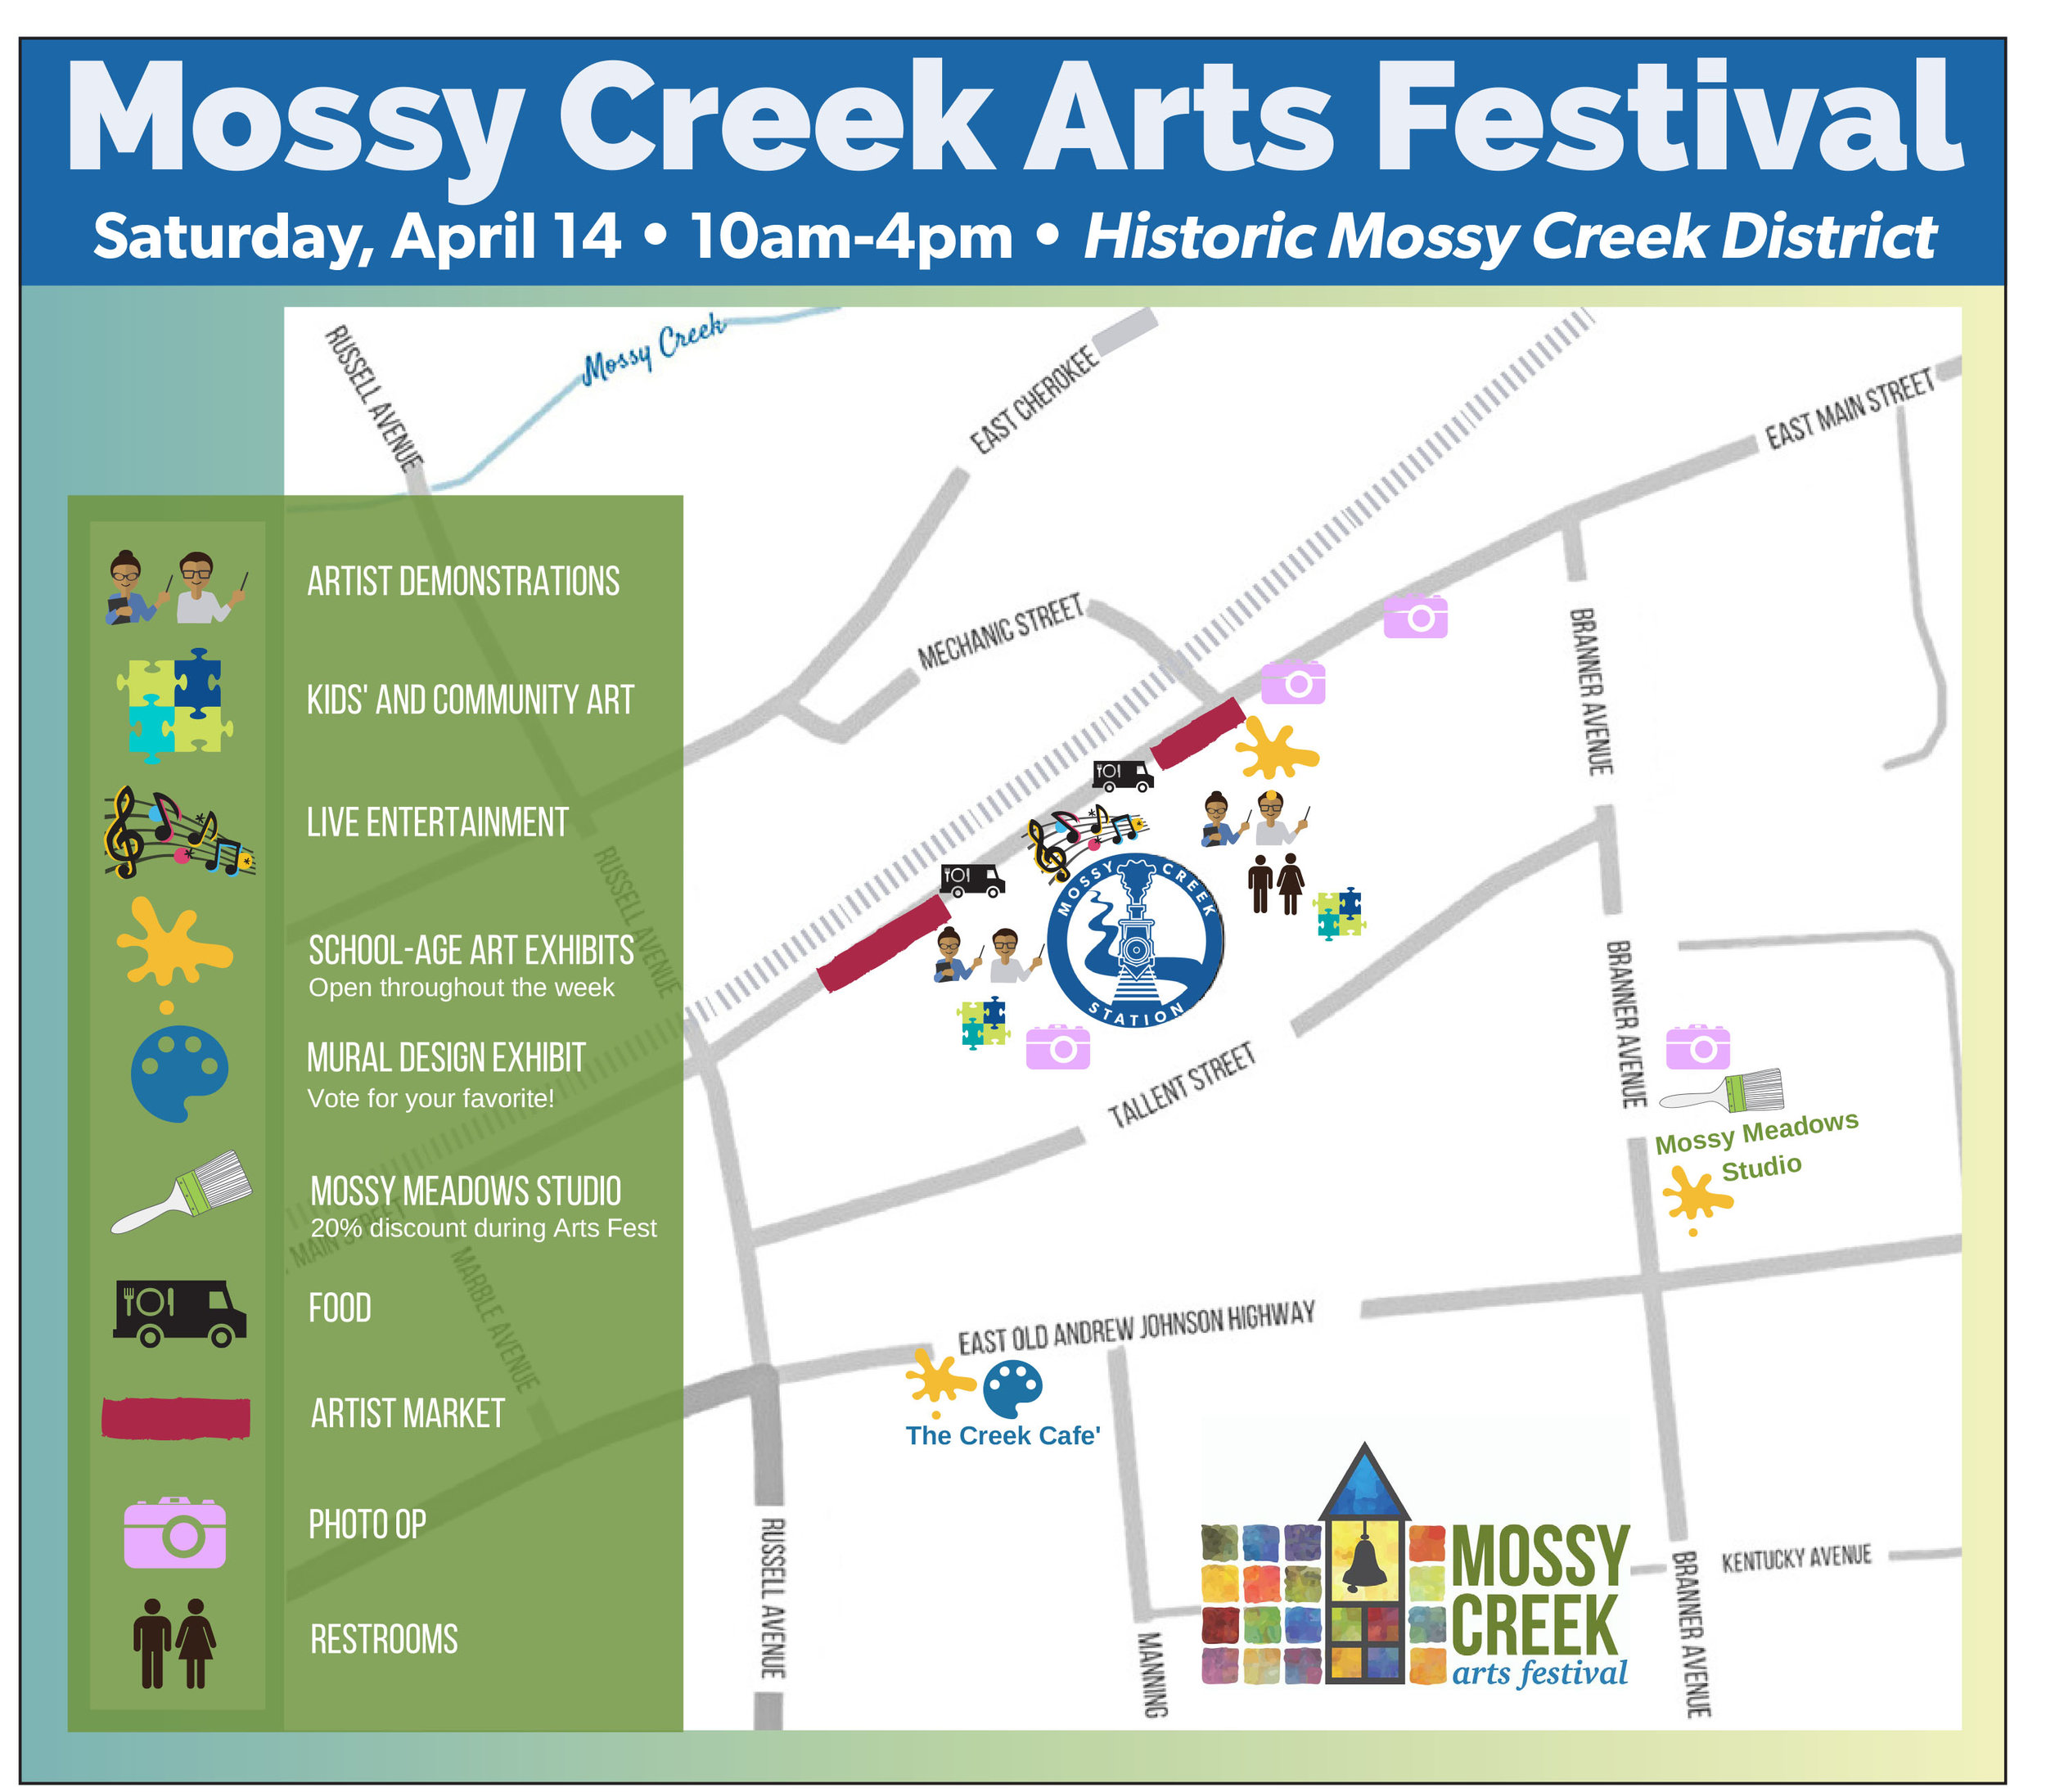 Download the map! Click the image to enlarge.